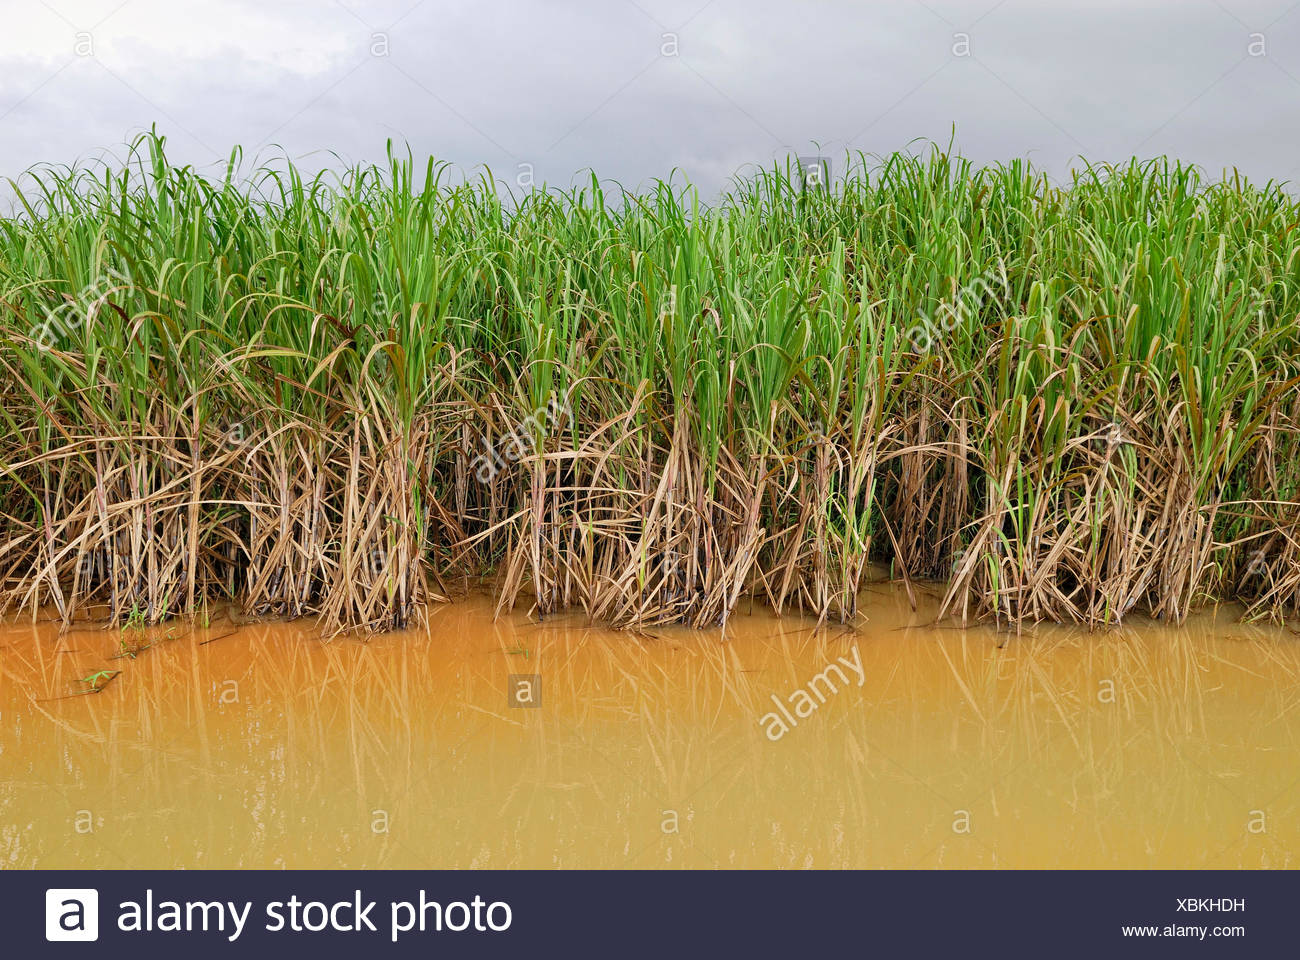 Sugarcane plantation after heavy rains, Highway 44, Cairns, Queensland, Australia - Stock Image